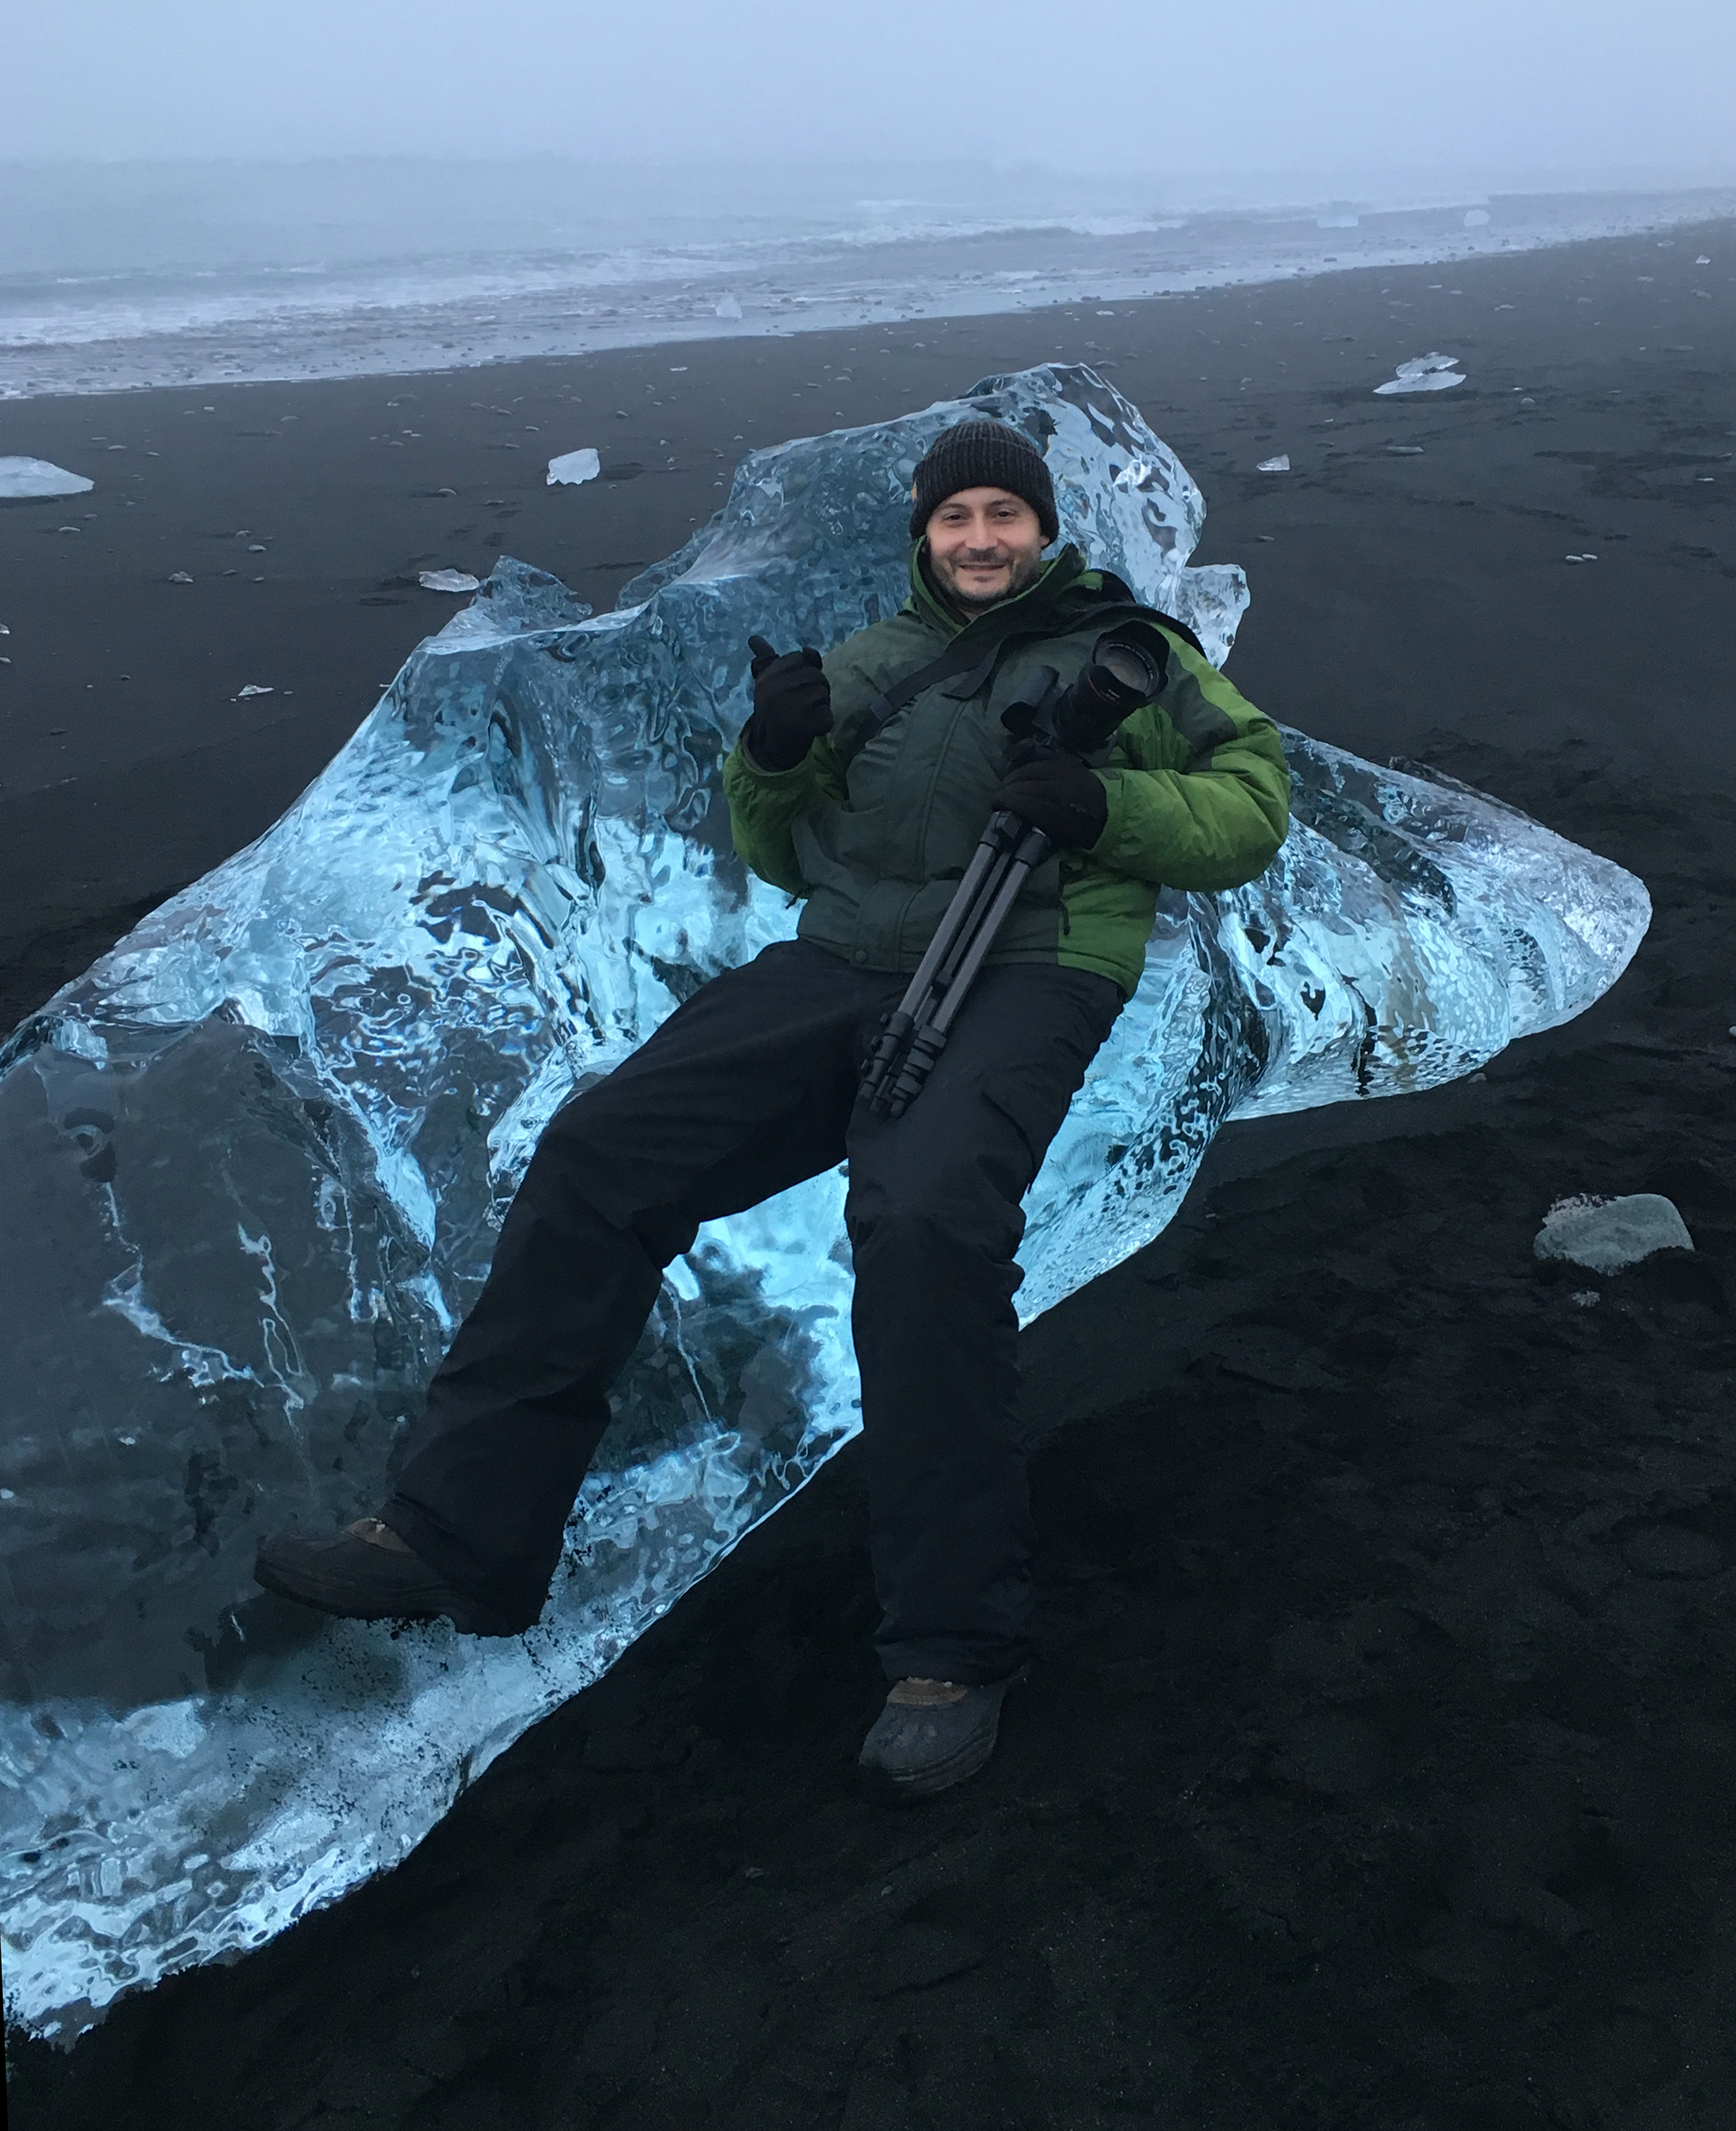 Josh Posvancz taking a break from a photoshoot in South East Iceland in 2015.